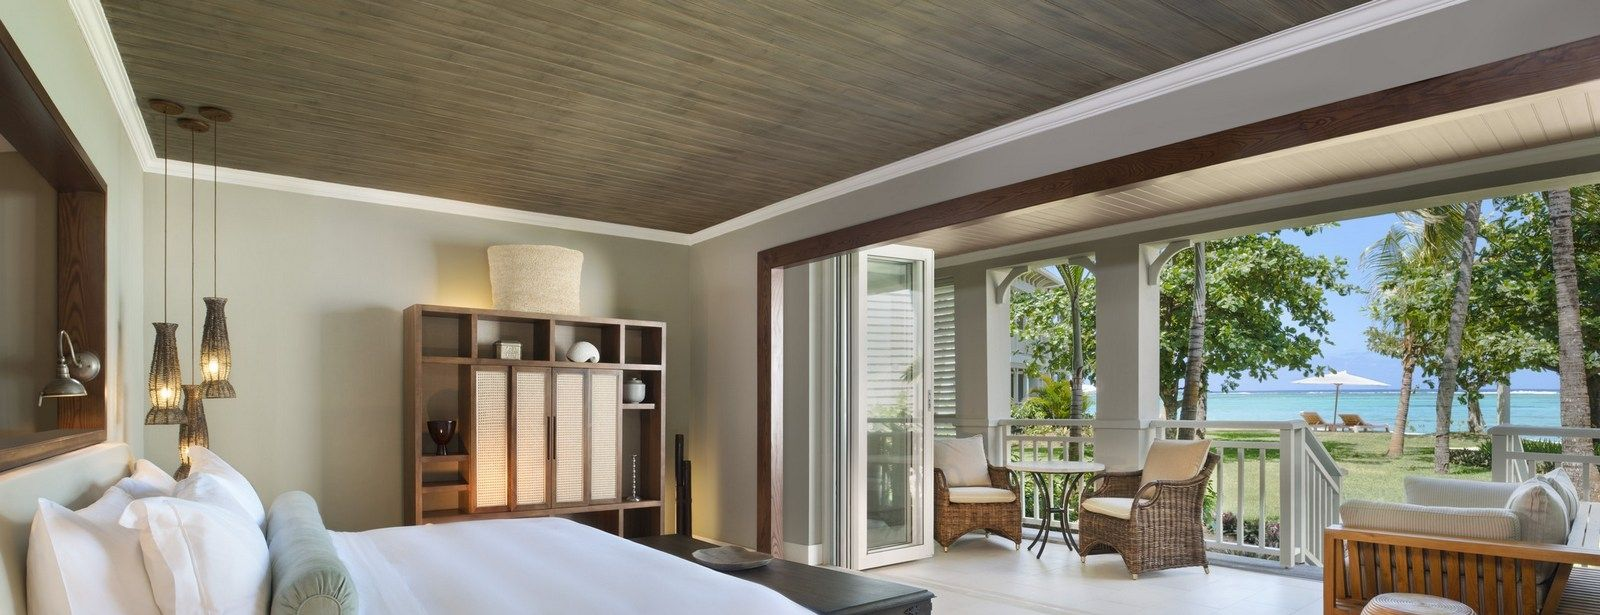 St. Regis Mauritius Ocean facing suite with sea view